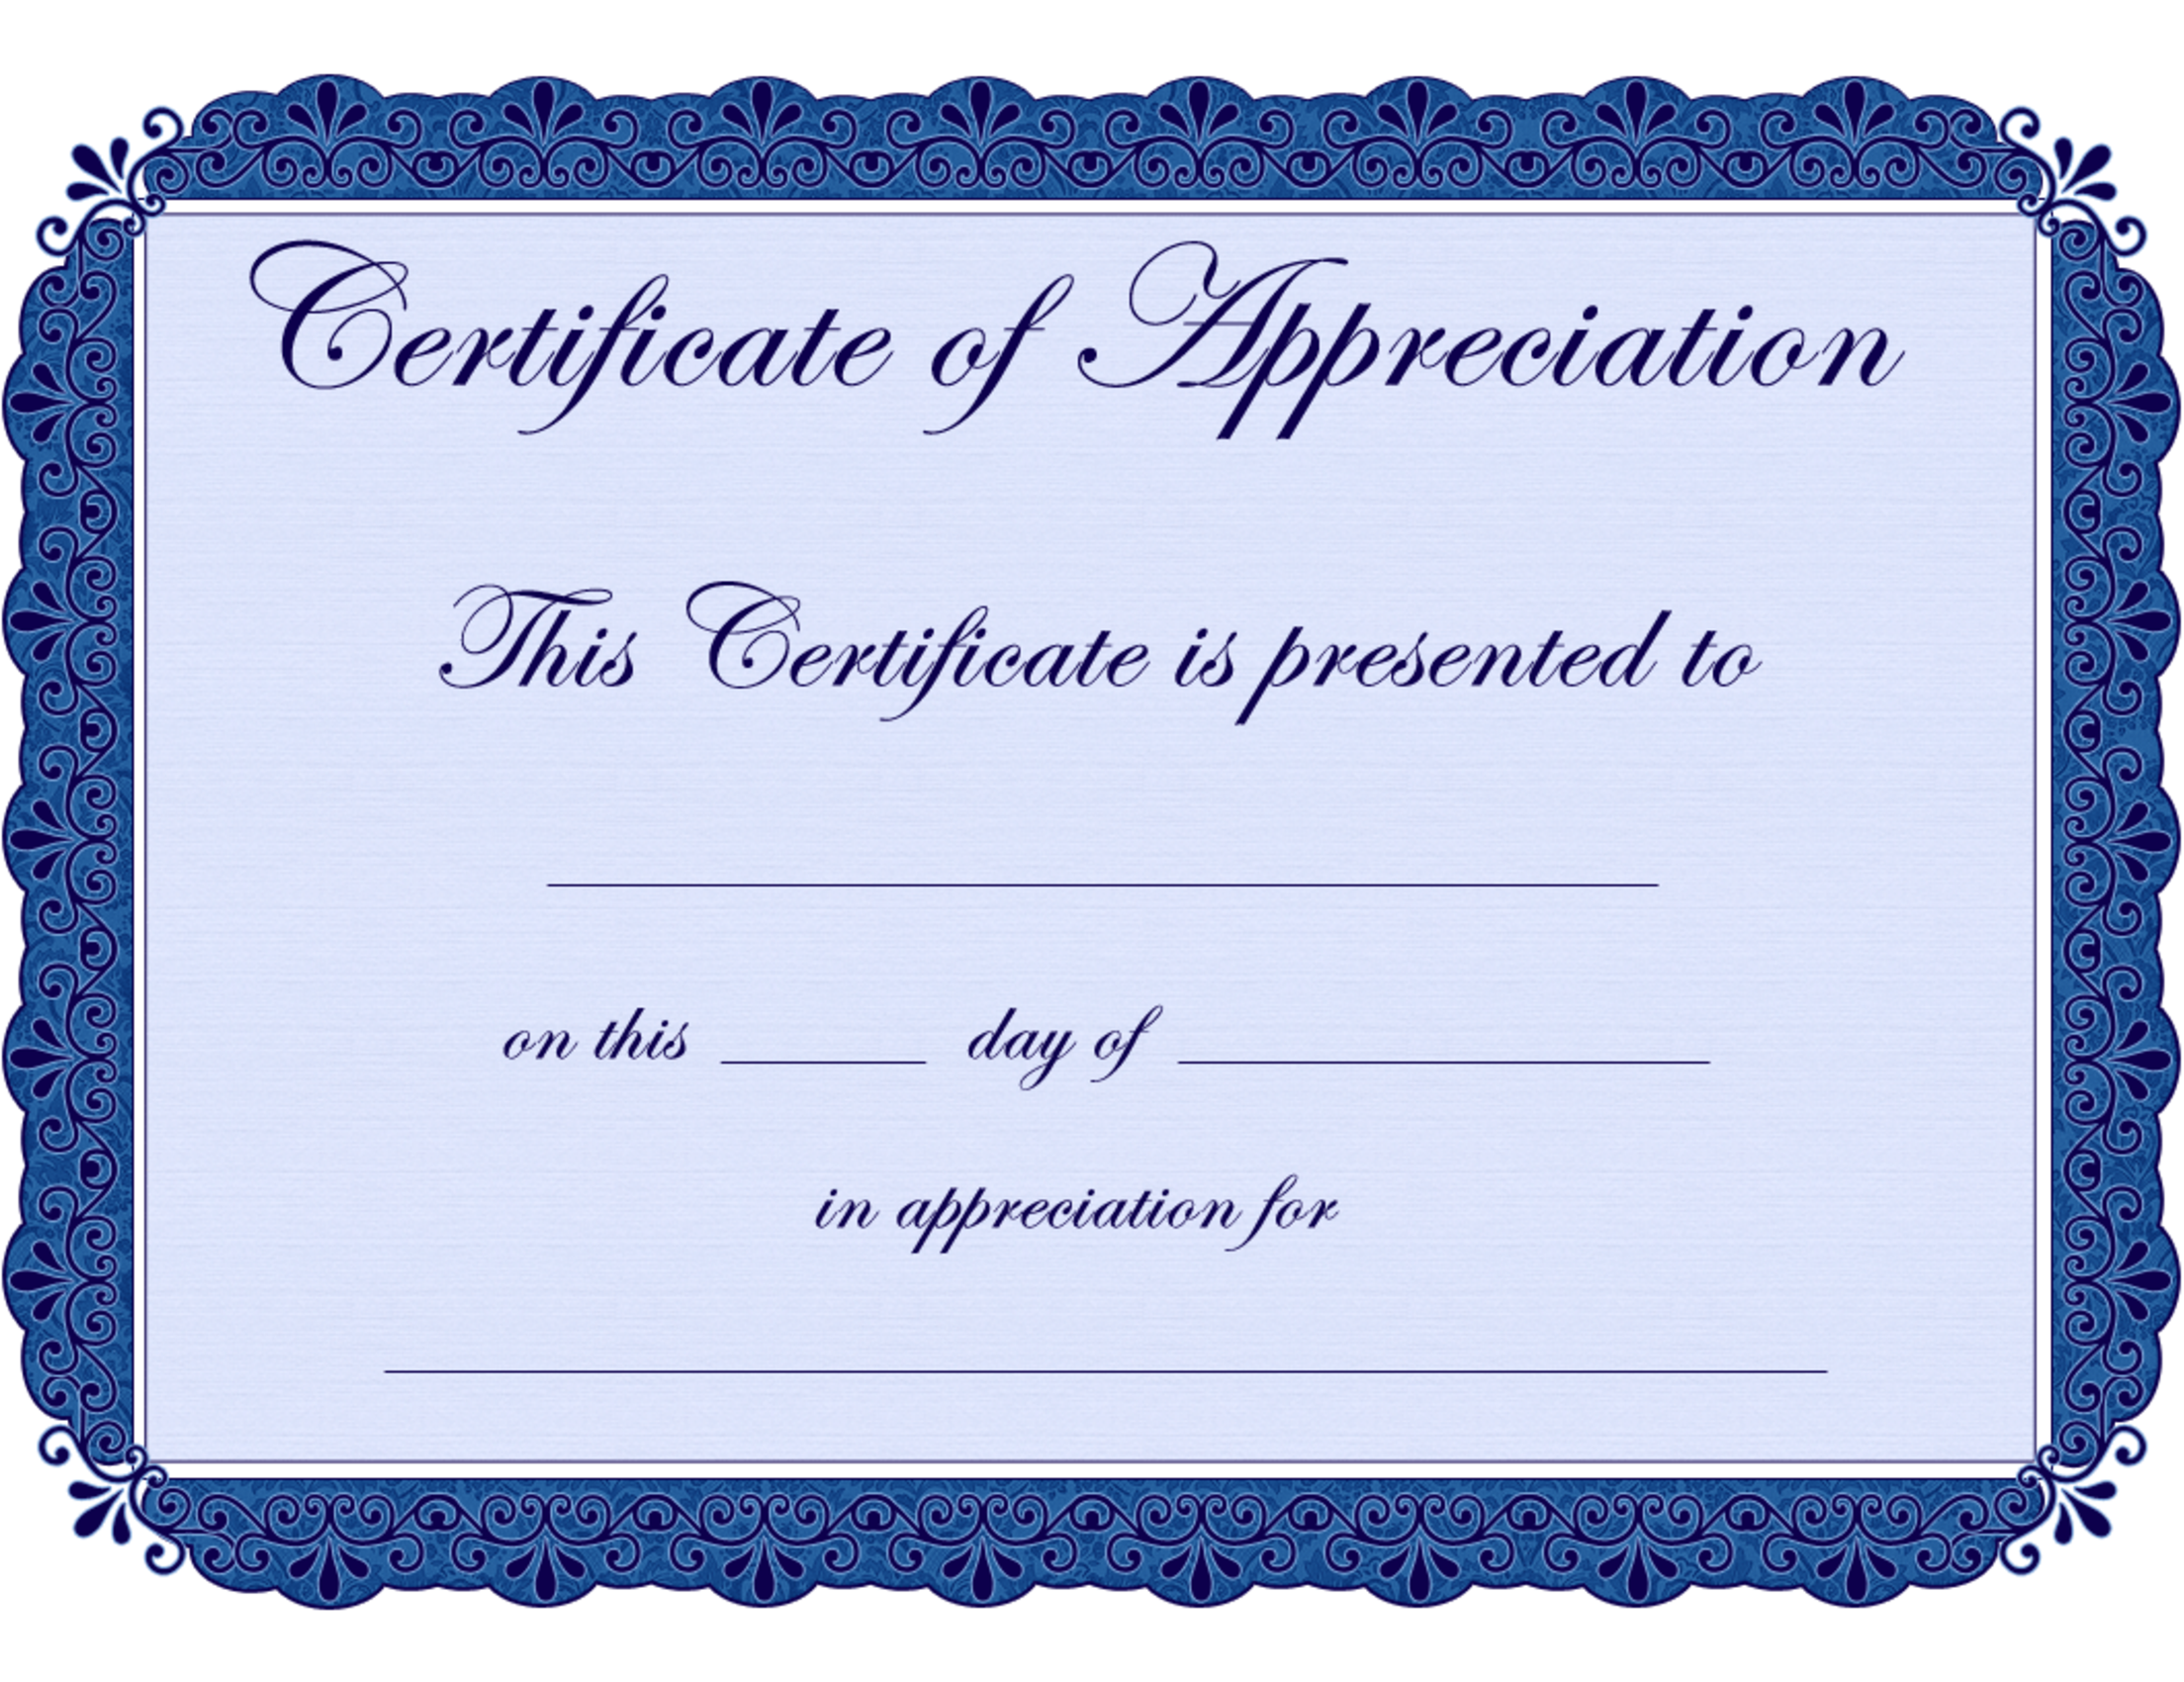 Free printable certificates certificate of appreciation certificate templates free for wordfree word certificate template clipart best clipart best hzikhnhe yadclub Gallery